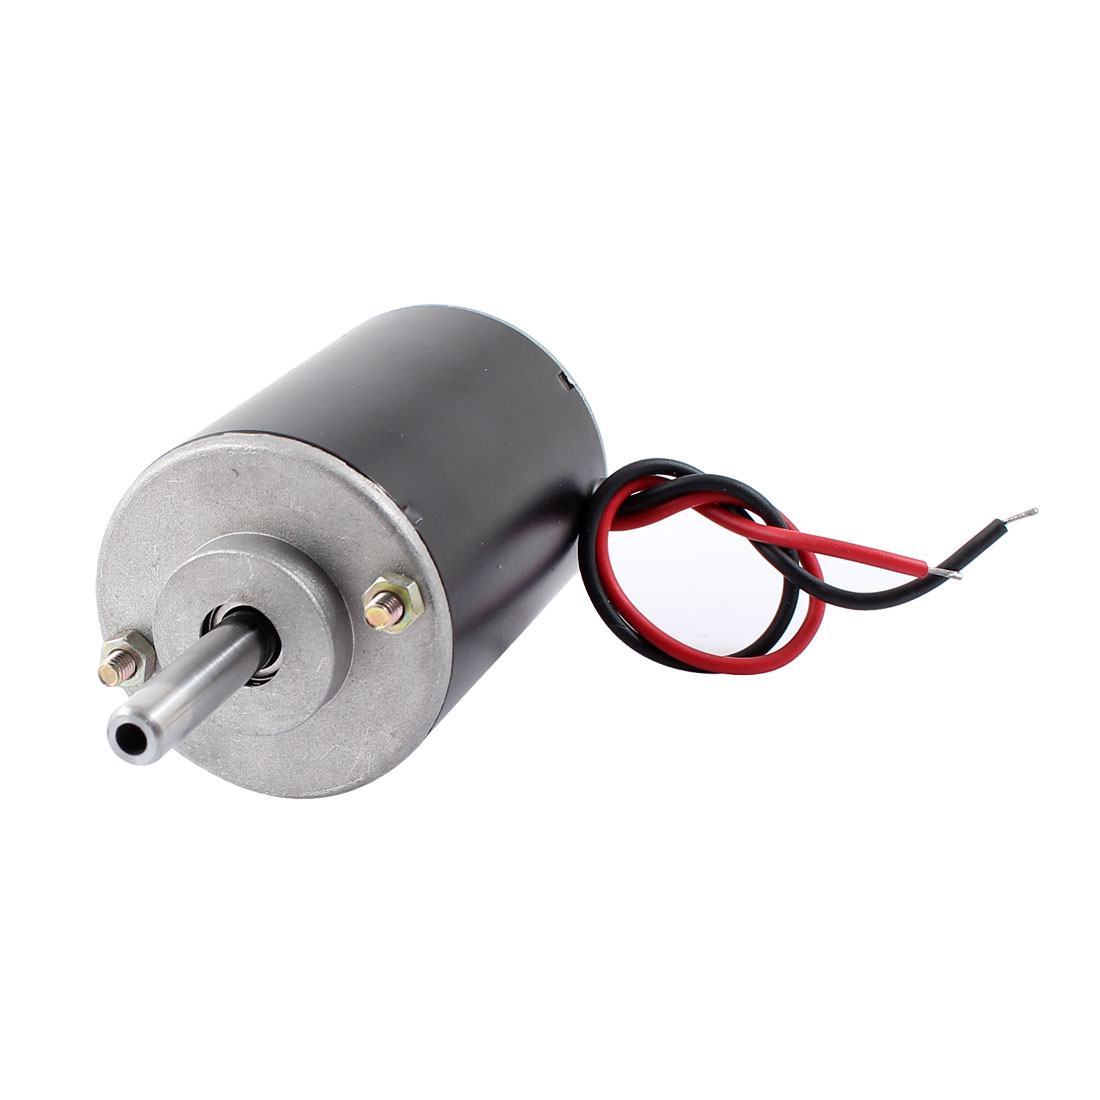 DC24V 6000RPM High Speed Electric Magnetic Coreless Motor for DIY RC Aircraft